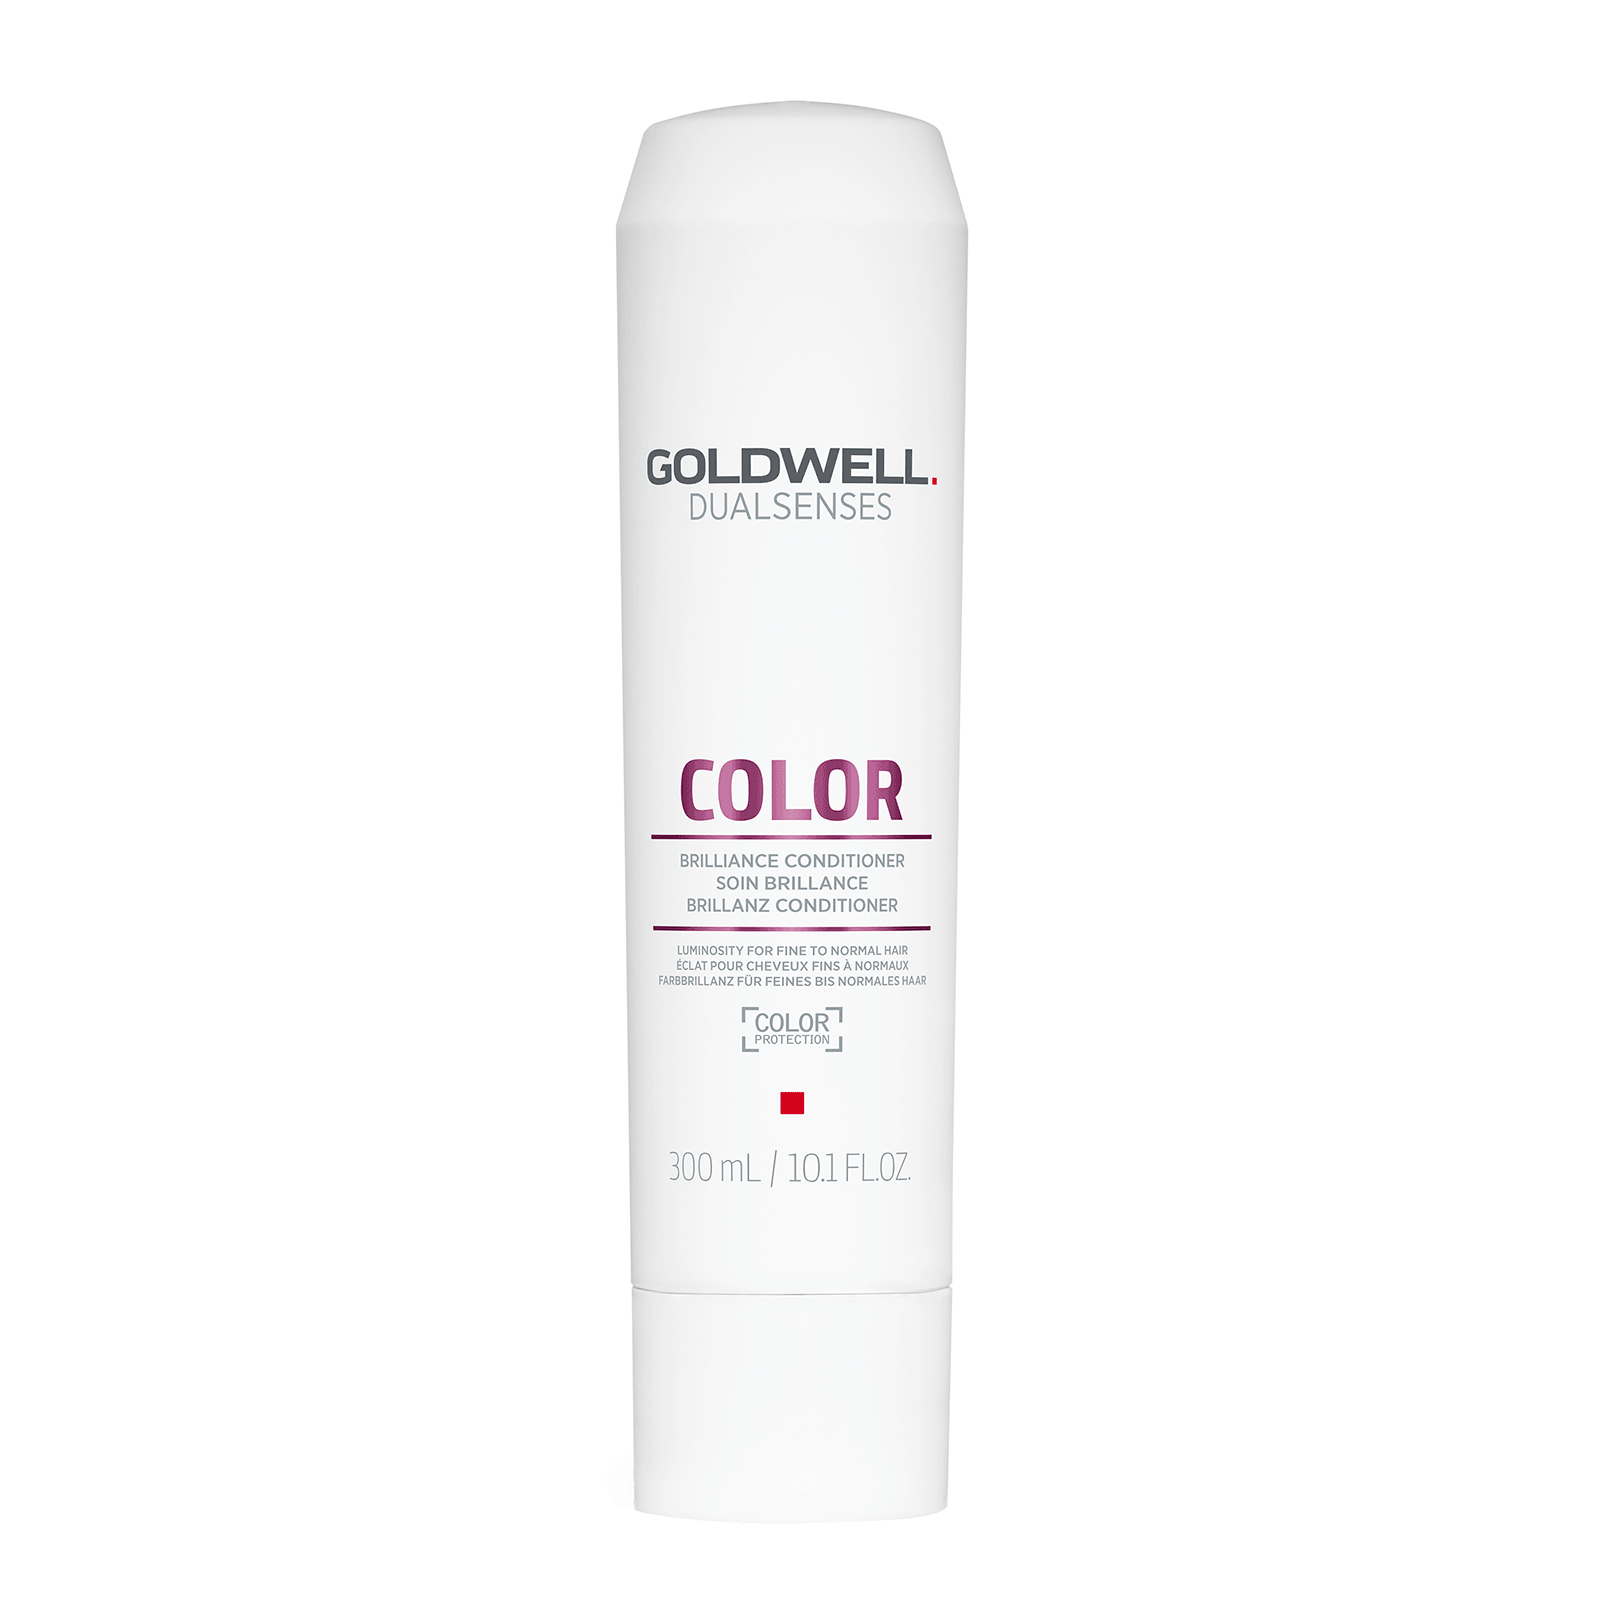 Dualsenses - Color Brilliance Conditioner